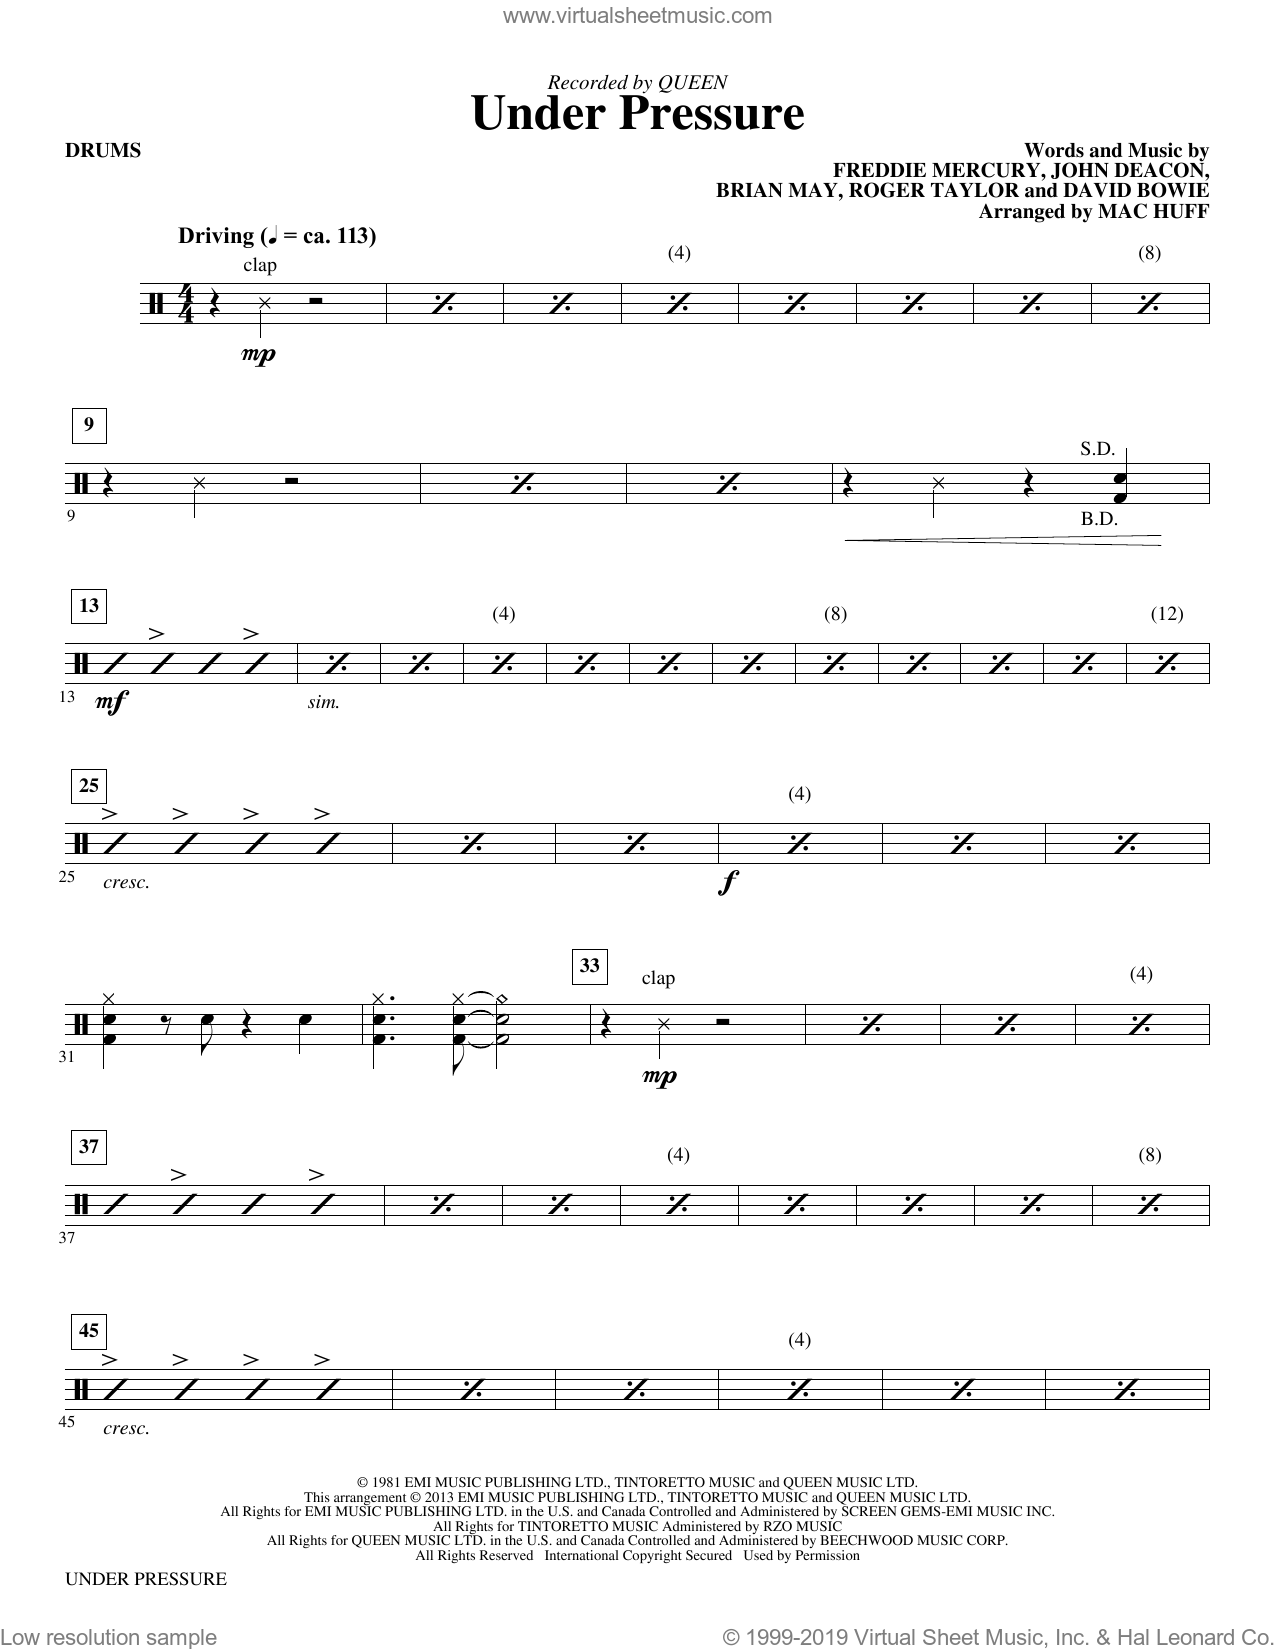 Under Pressure (complete set of parts) sheet music for orchestra/band by Mac Huff, Brian May, David Bowie, Freddie Mercury, John Deacon, Queen and Roger Taylor, intermediate skill level